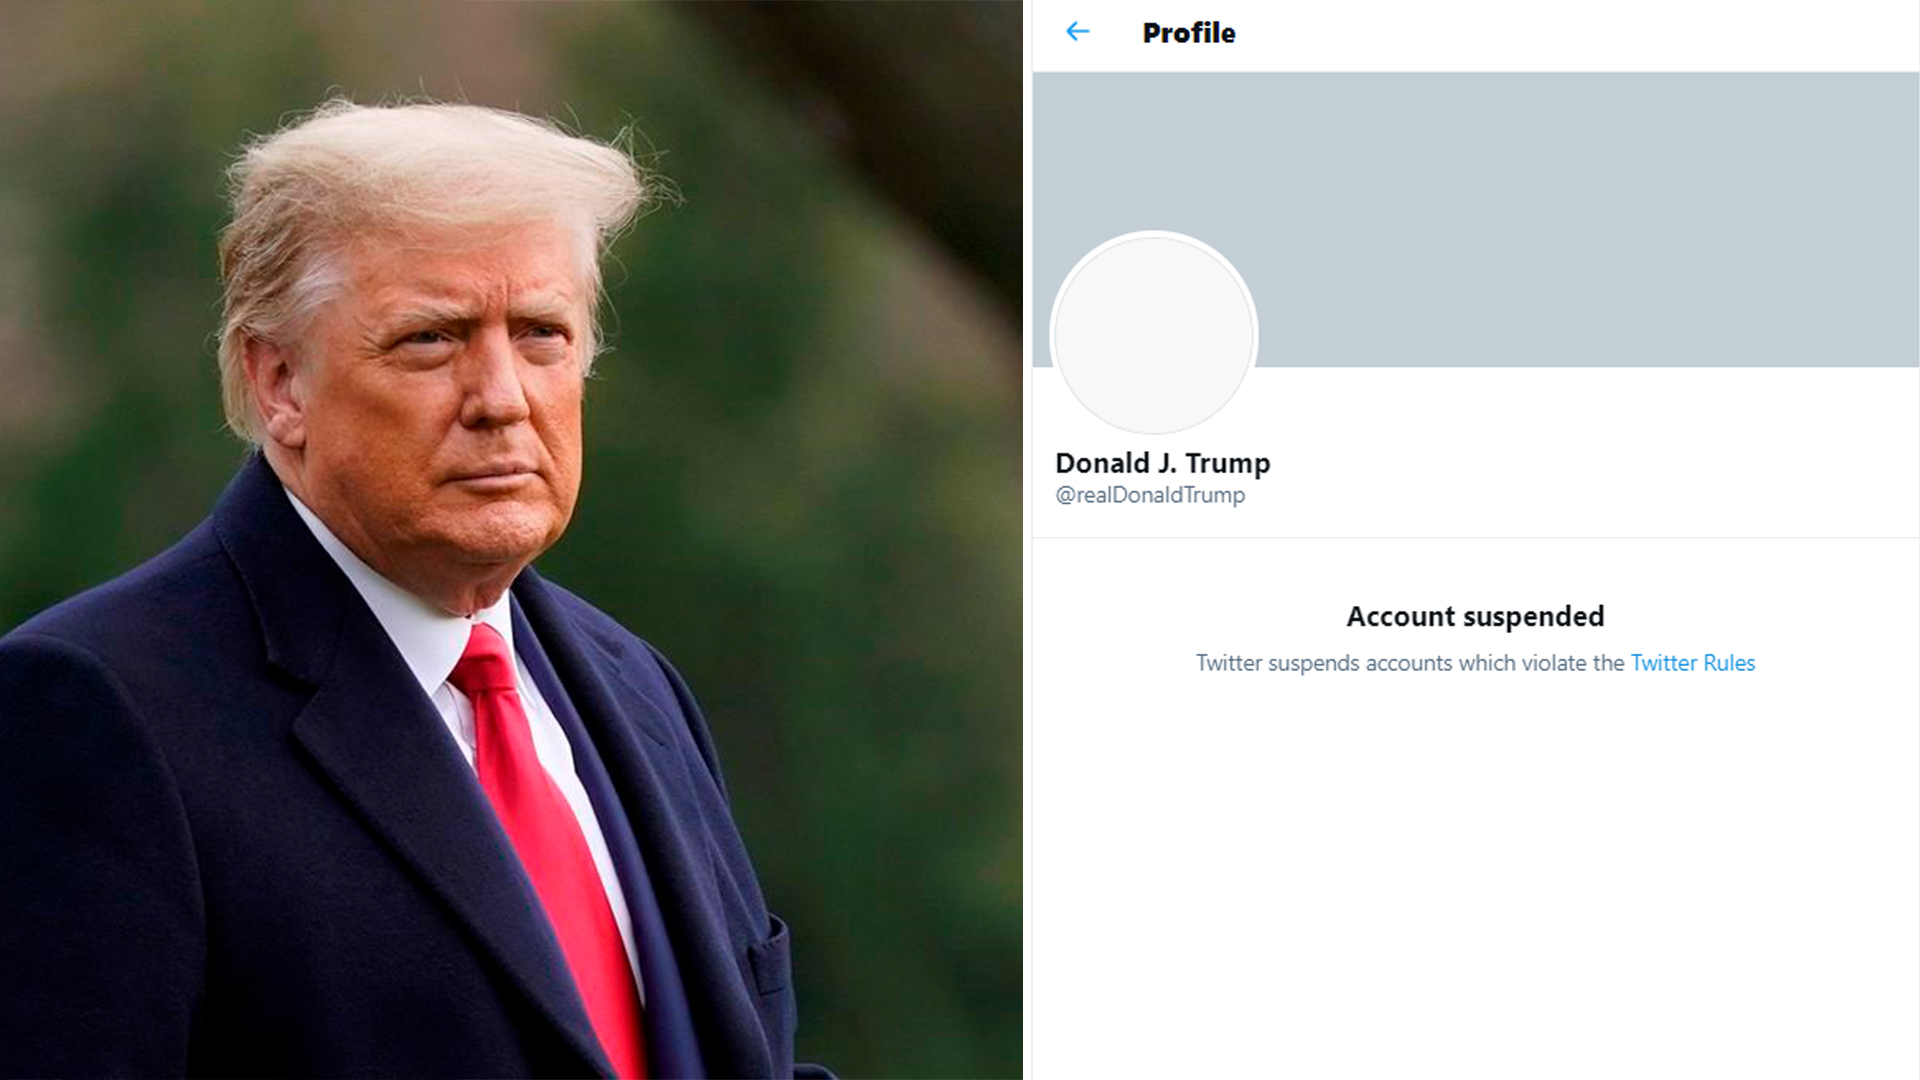 Twitter suspended the account of outgoing U.S. President Donald Trump Jan. 8 2021